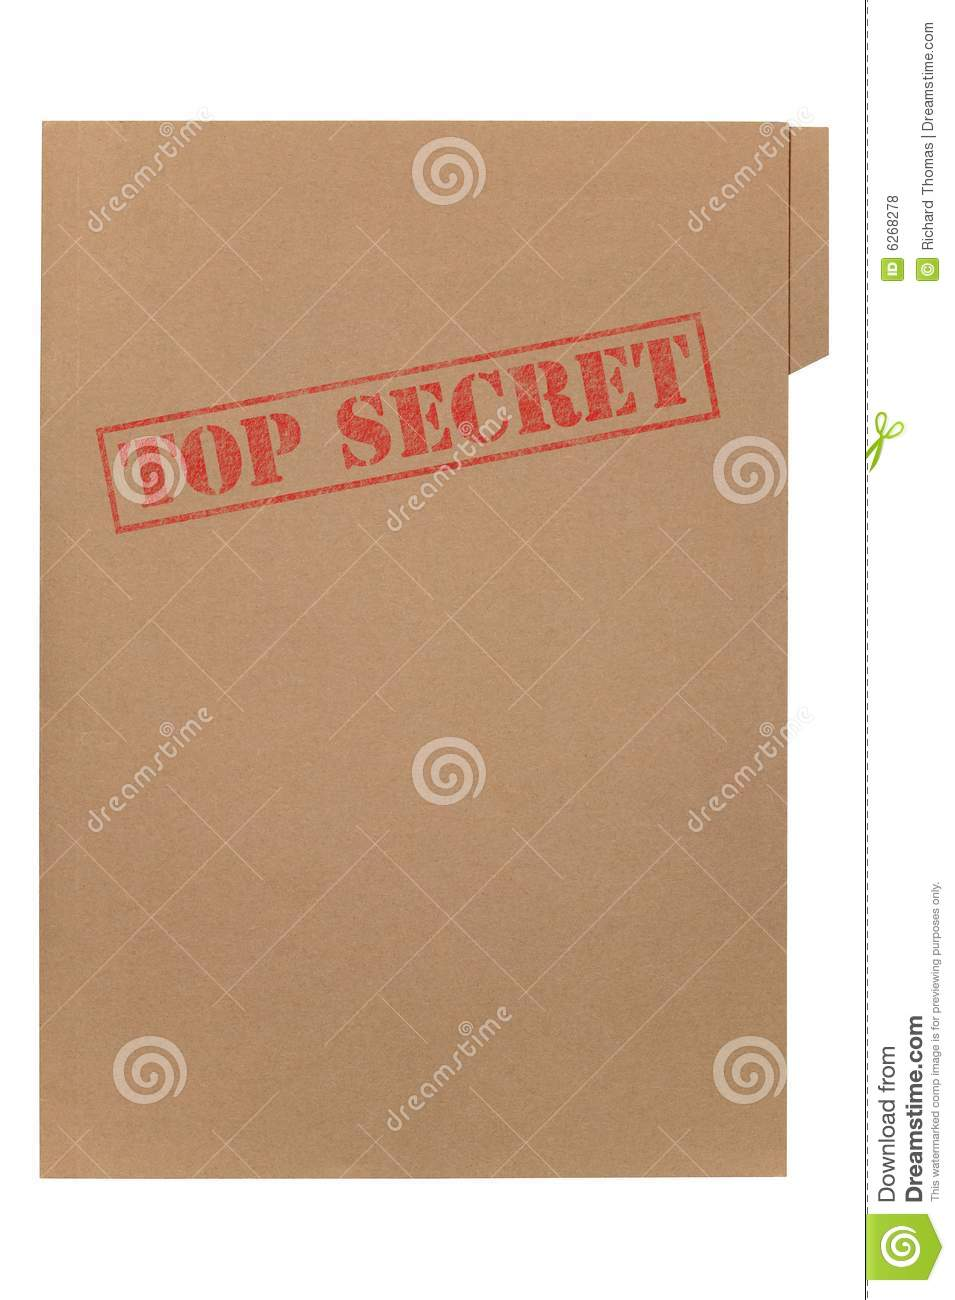 top secret letter union organizing Union officials' top priority ending the secret ballot elections process and the associated protections for employees choosing whether to join a union [ more.